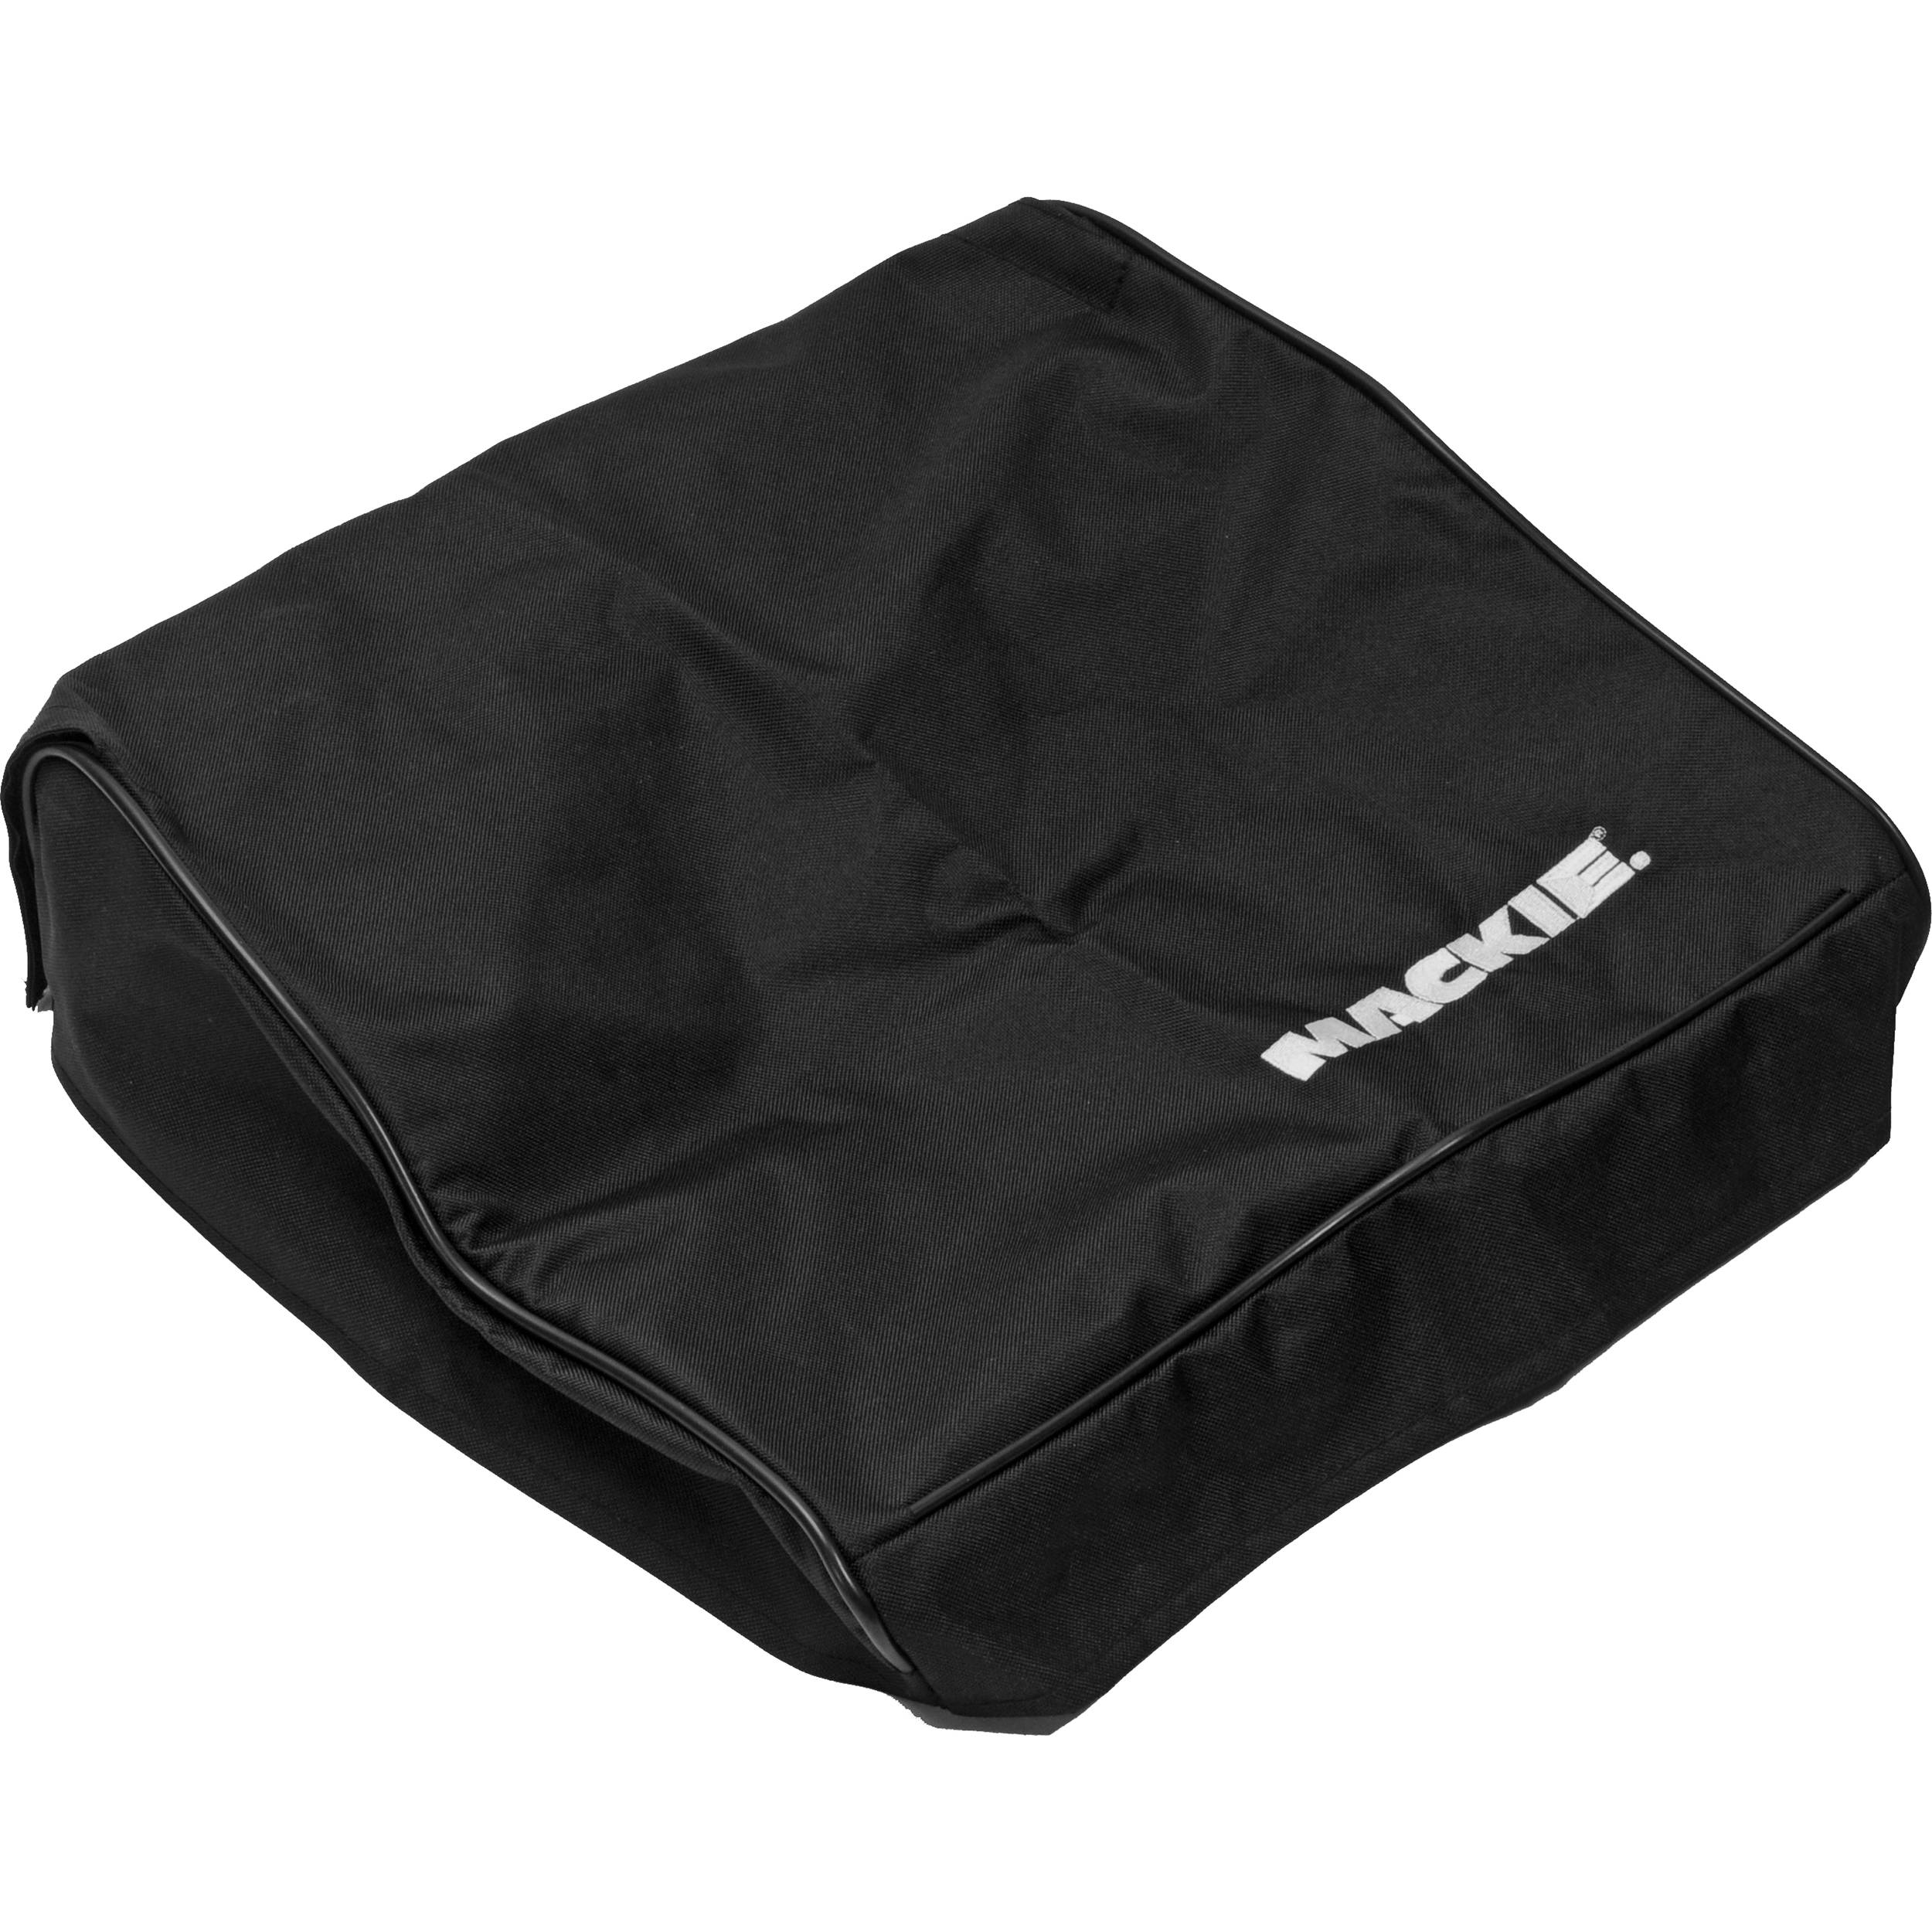 mackie dust cover for profx12 profx12v2 mixers profx12. Black Bedroom Furniture Sets. Home Design Ideas